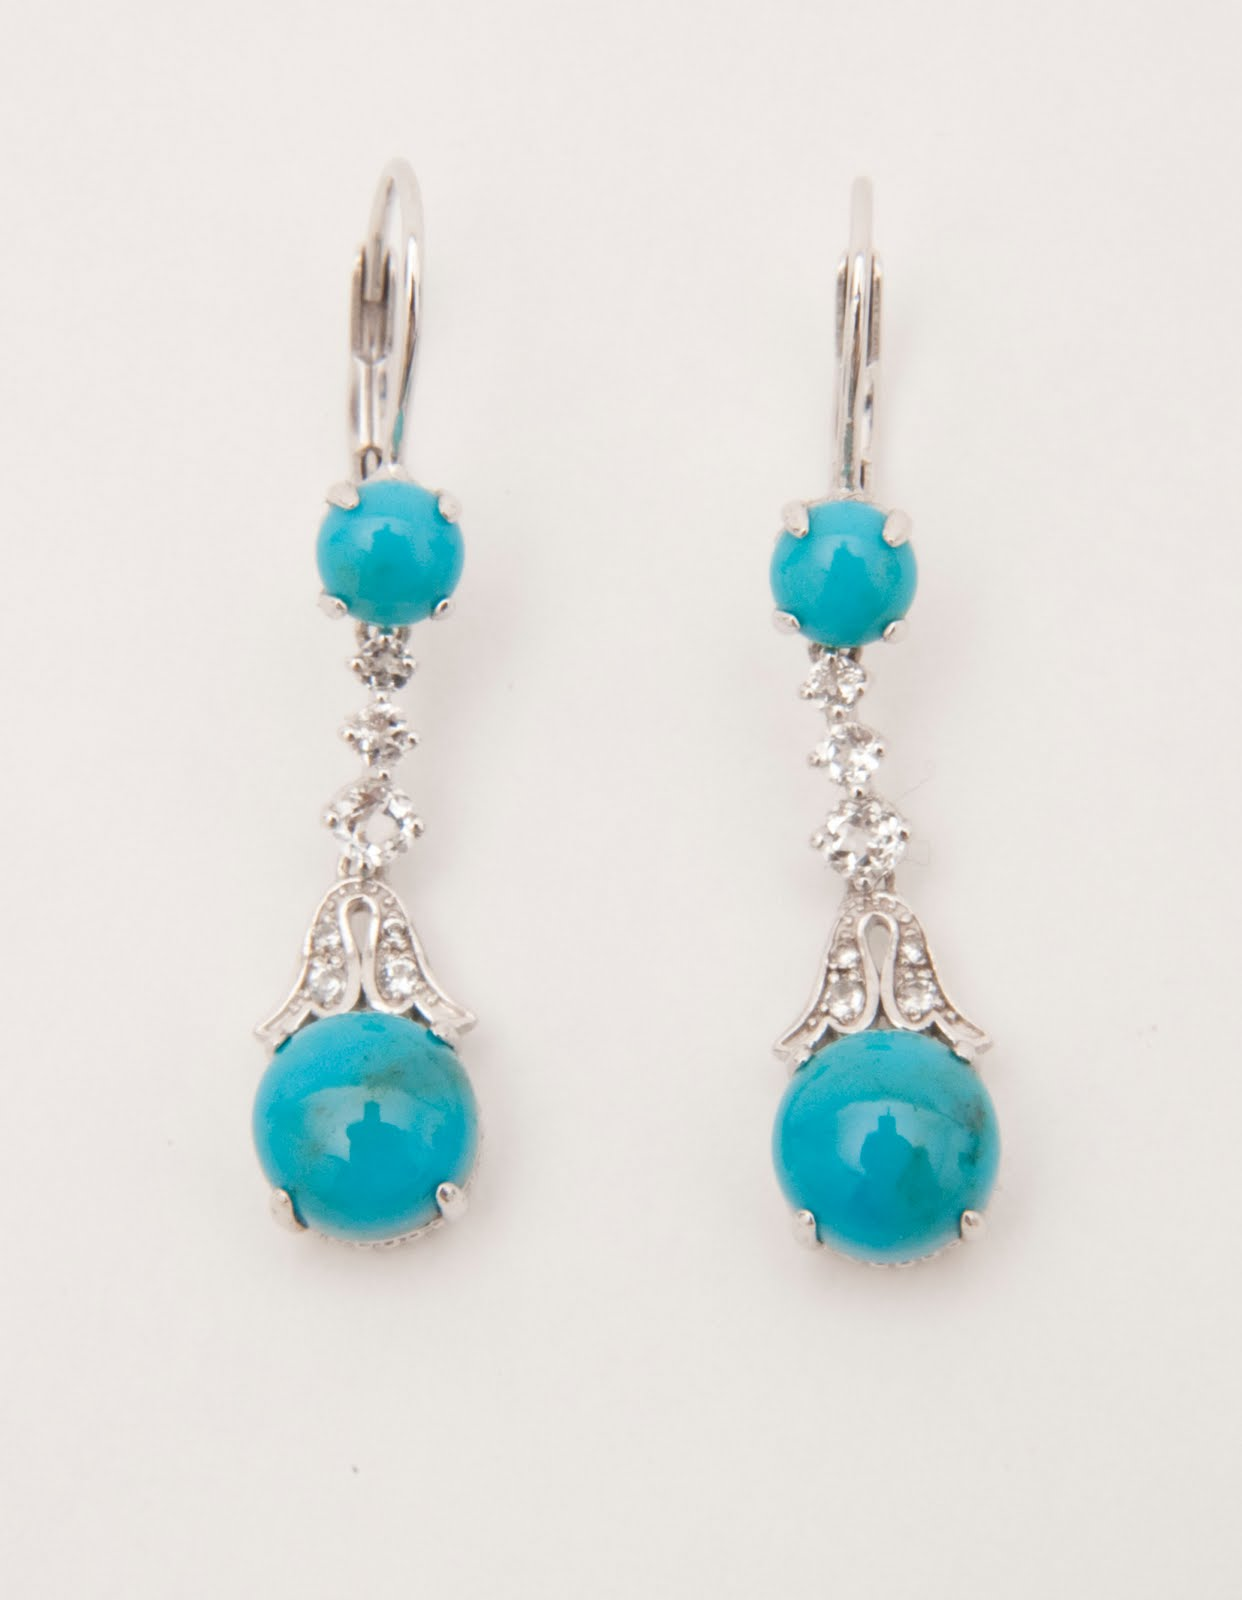 Sterling Sliver, Turquoise And White Topaz Lever Back Earrings, Inspired By  The Smithsonian's Empress Marie Louise Diadem